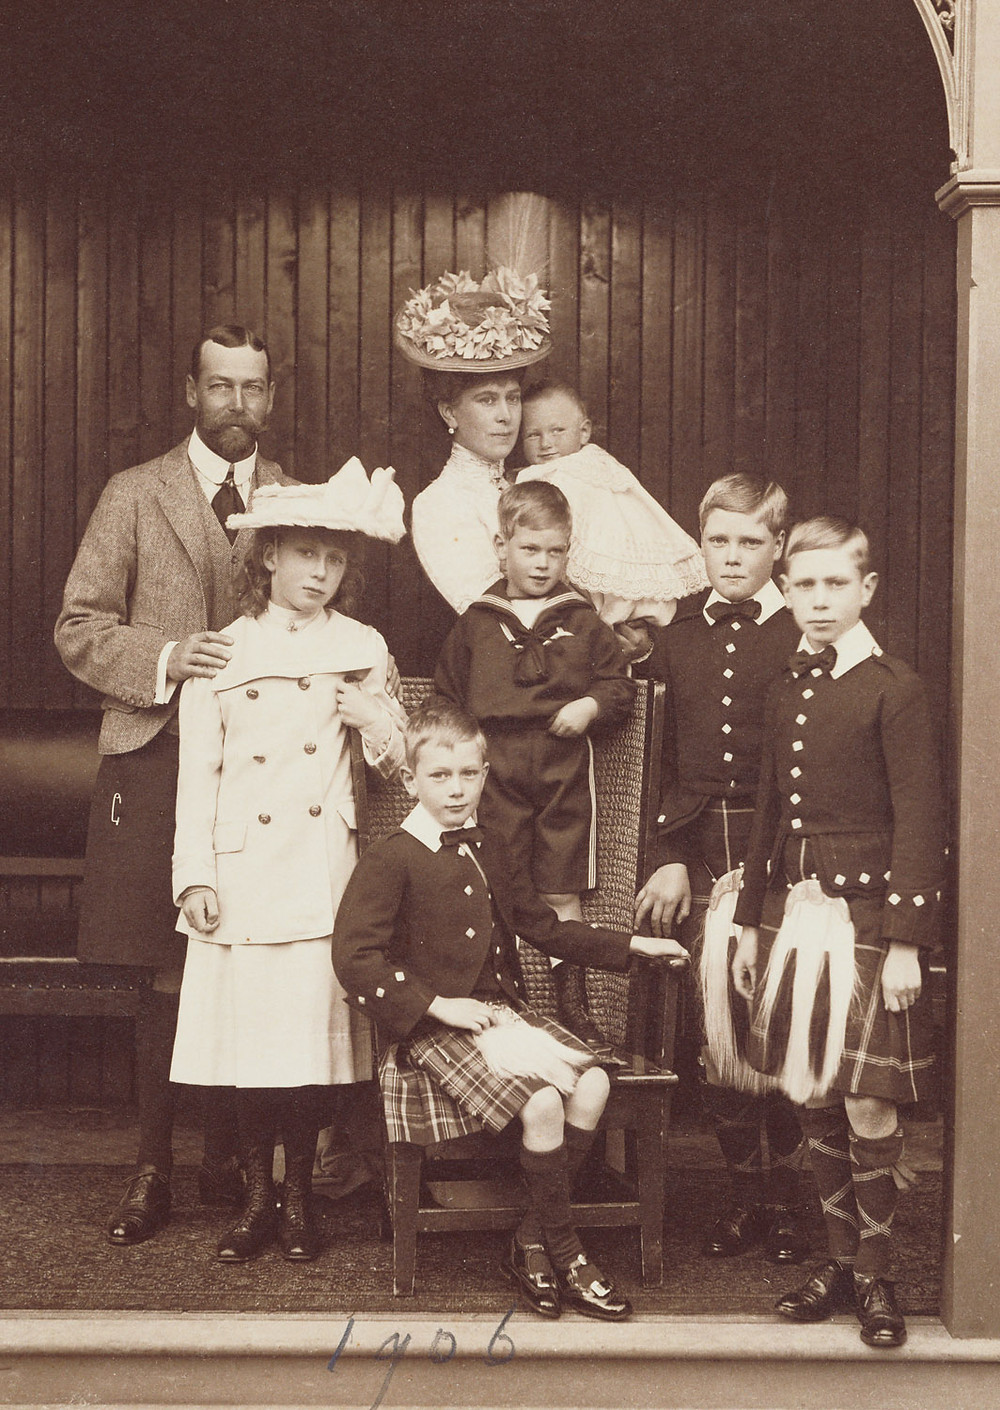 Photograph of King George V (1865-1936) and Queen Mary with their six children (from left to right): Princess Mary (1897-1965), Prince John (1905-19), in his mother's arms, Prince Henry (1900-74) (seated), Prince George (1902-42). Prince Edward (later King Edward VIII) (1894-1972), Prince Albert (later King George VI) (1895-1952)